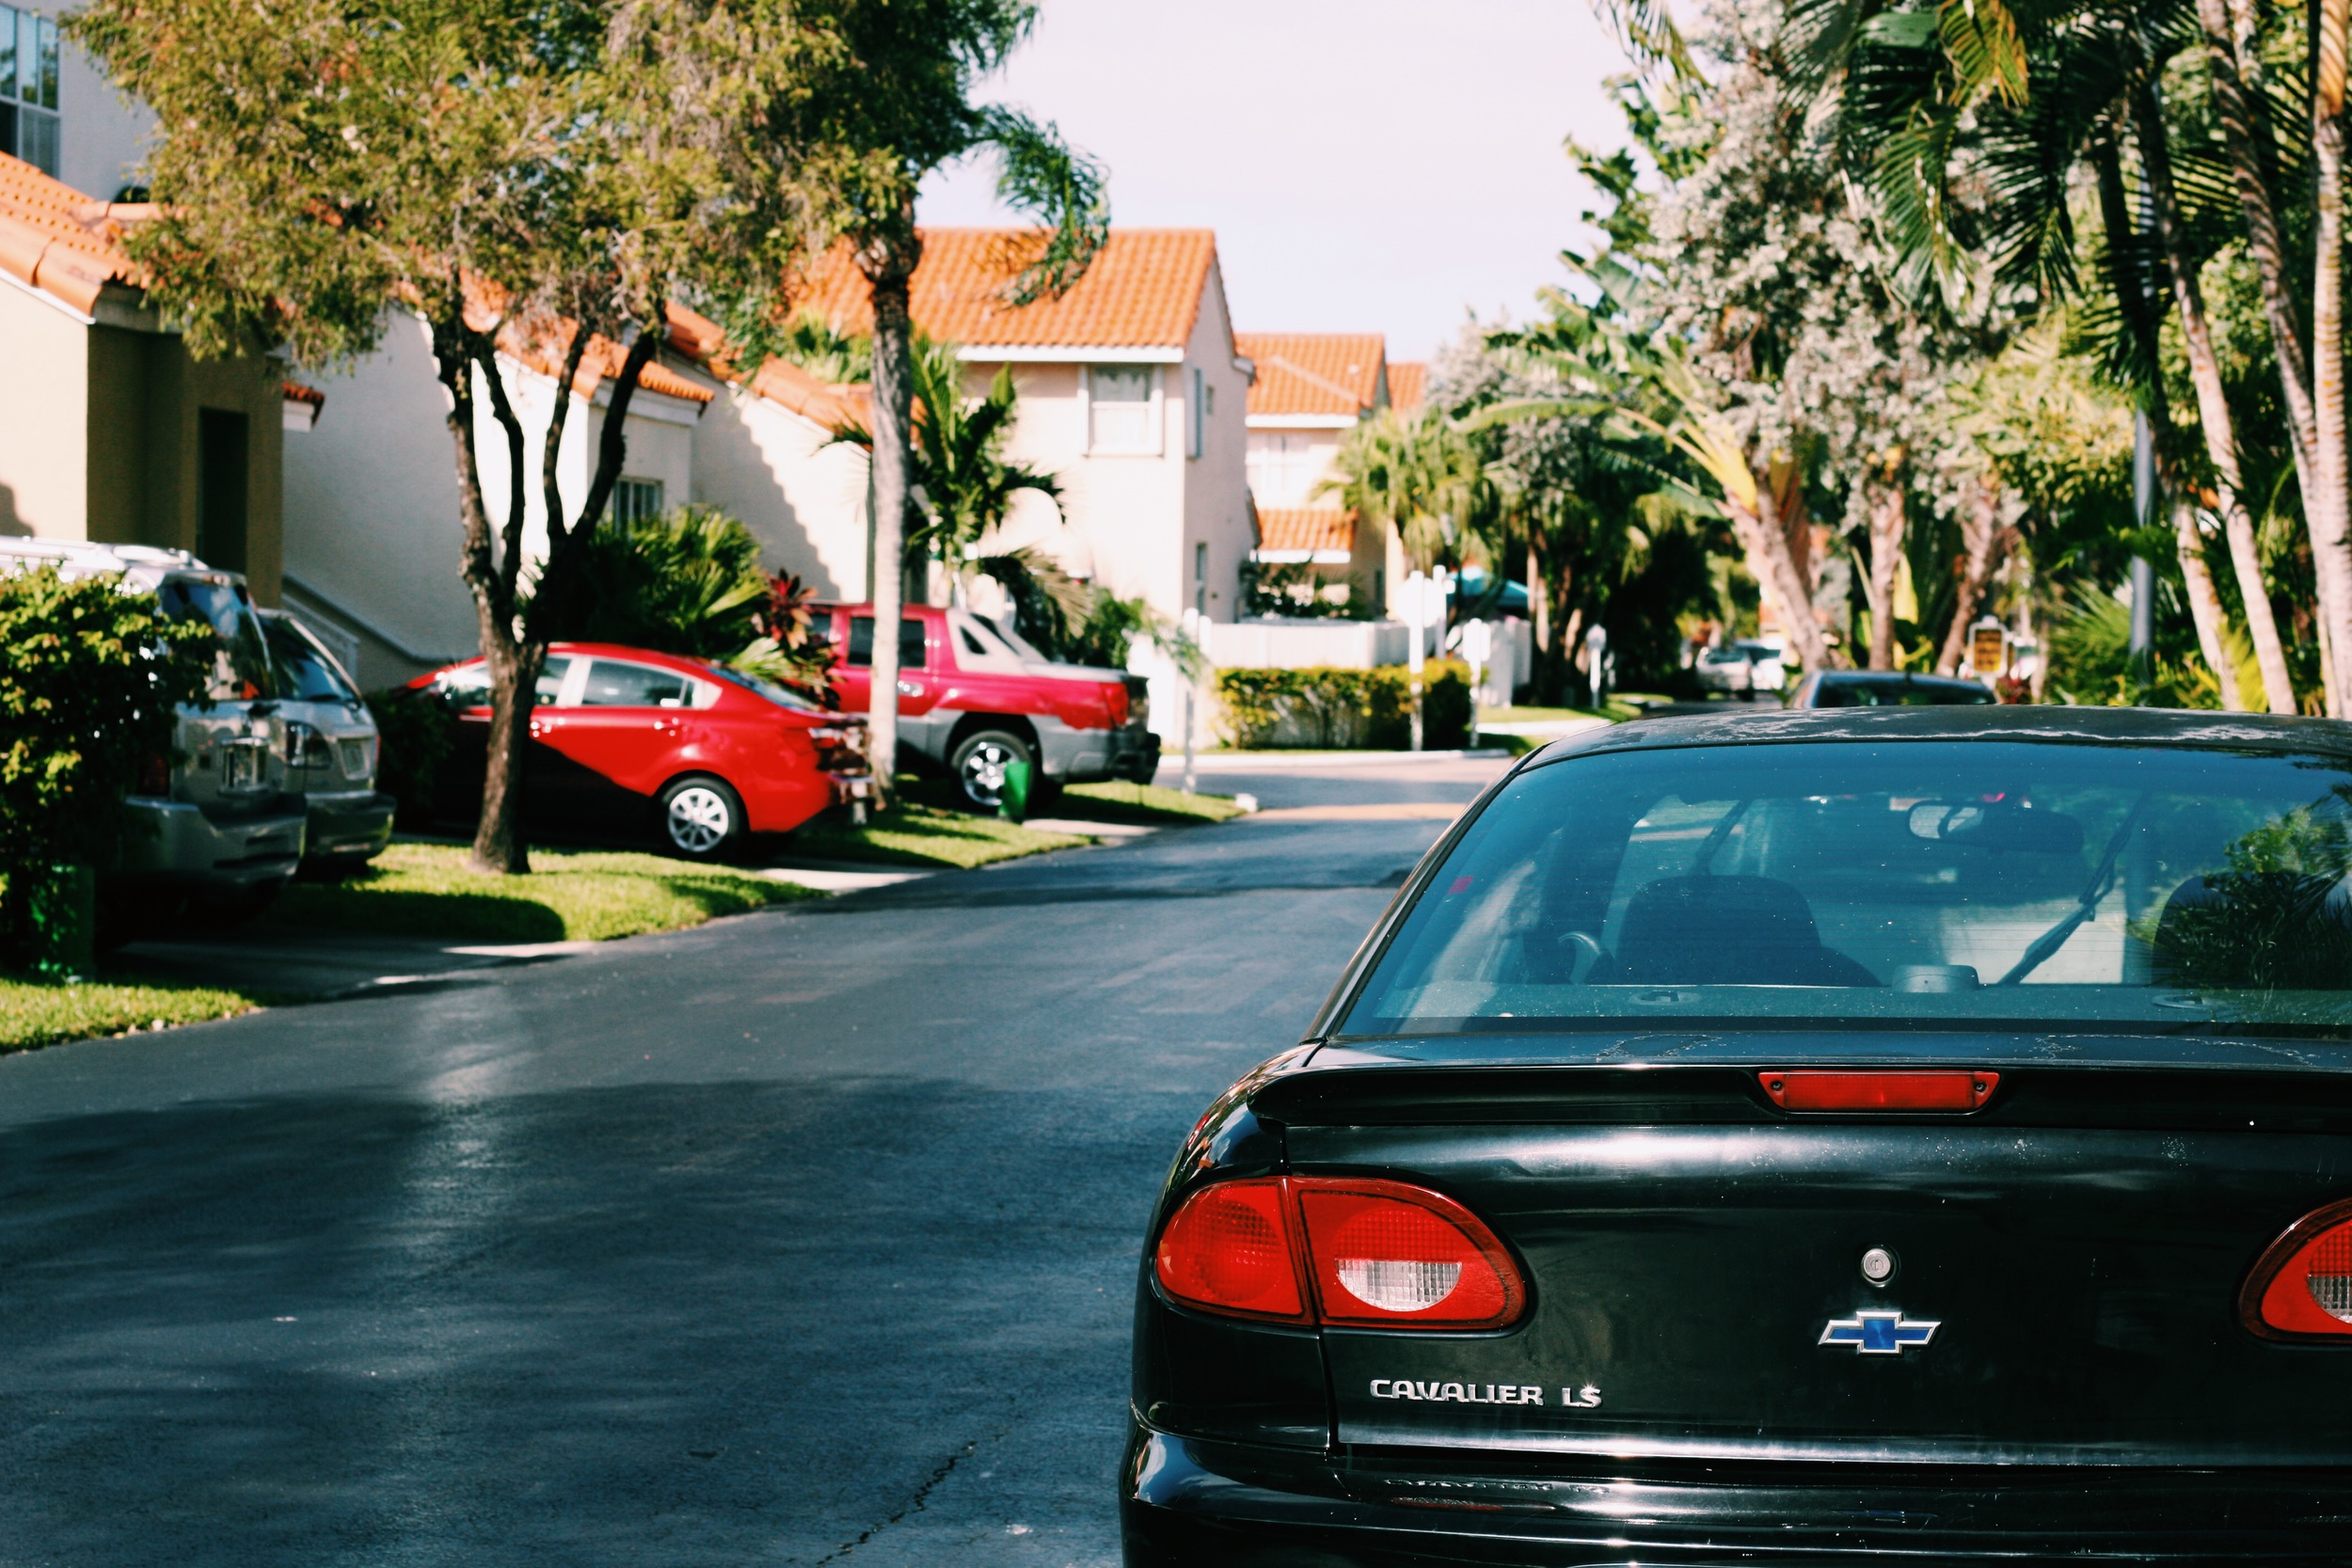 Hollywood suburbs  . There is an air of ease as soon as you hit the streets of suburban Florida.